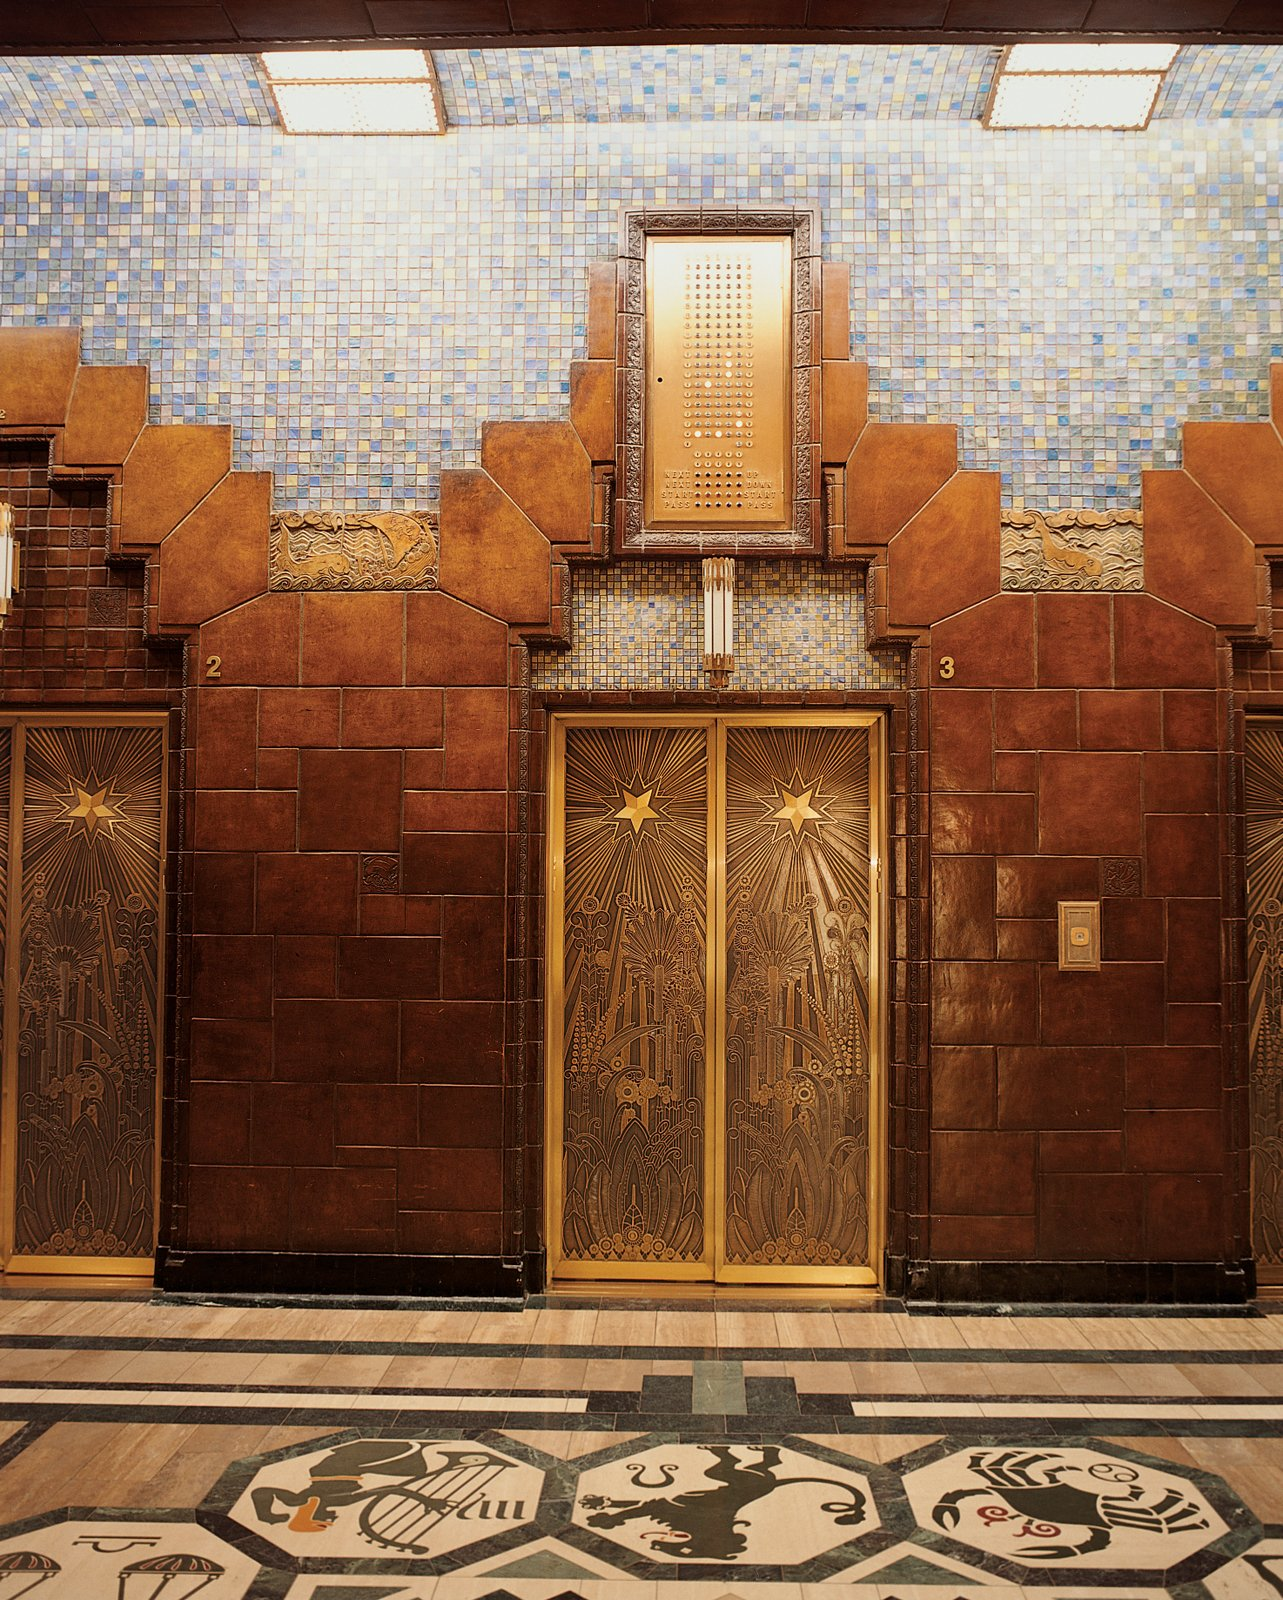 Lavish tile treatment and intricately-etched elevator doors are found inside the Art Deco Marine Building.  Photos from Vancouver is an extroverted city